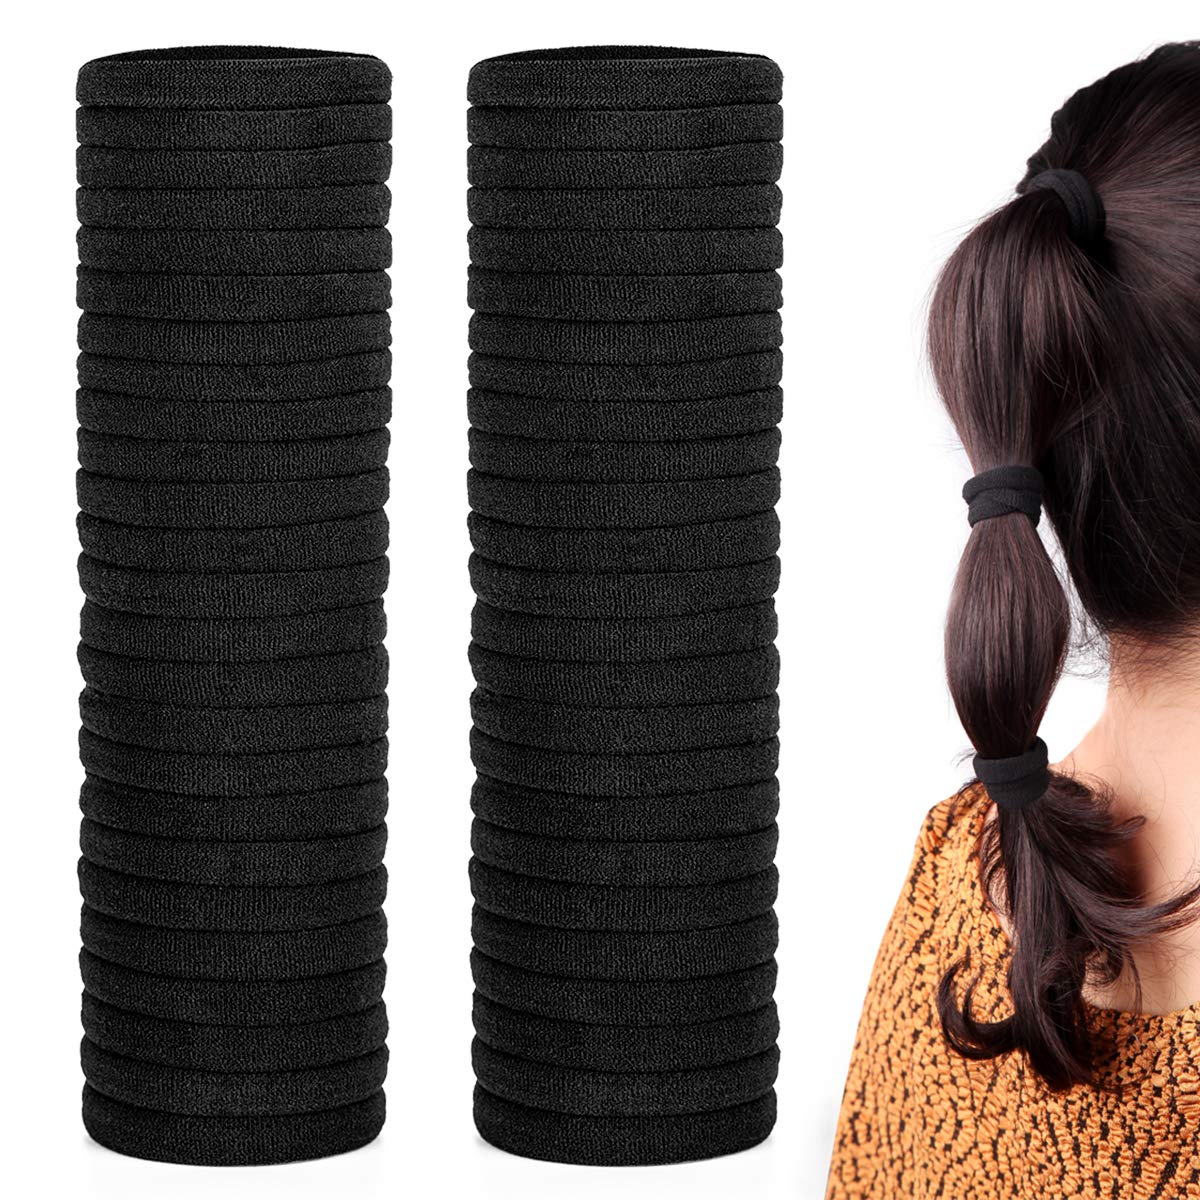 50 Pack Dreamlover Seamless Thick Cotton Hair Rubber Bands, Elastic Durable Ponytail Holders Hair Ties, Ponytail Buns Headbands, No Crease and Damage Hair Accessories for Kids, Girls and Women (Black)